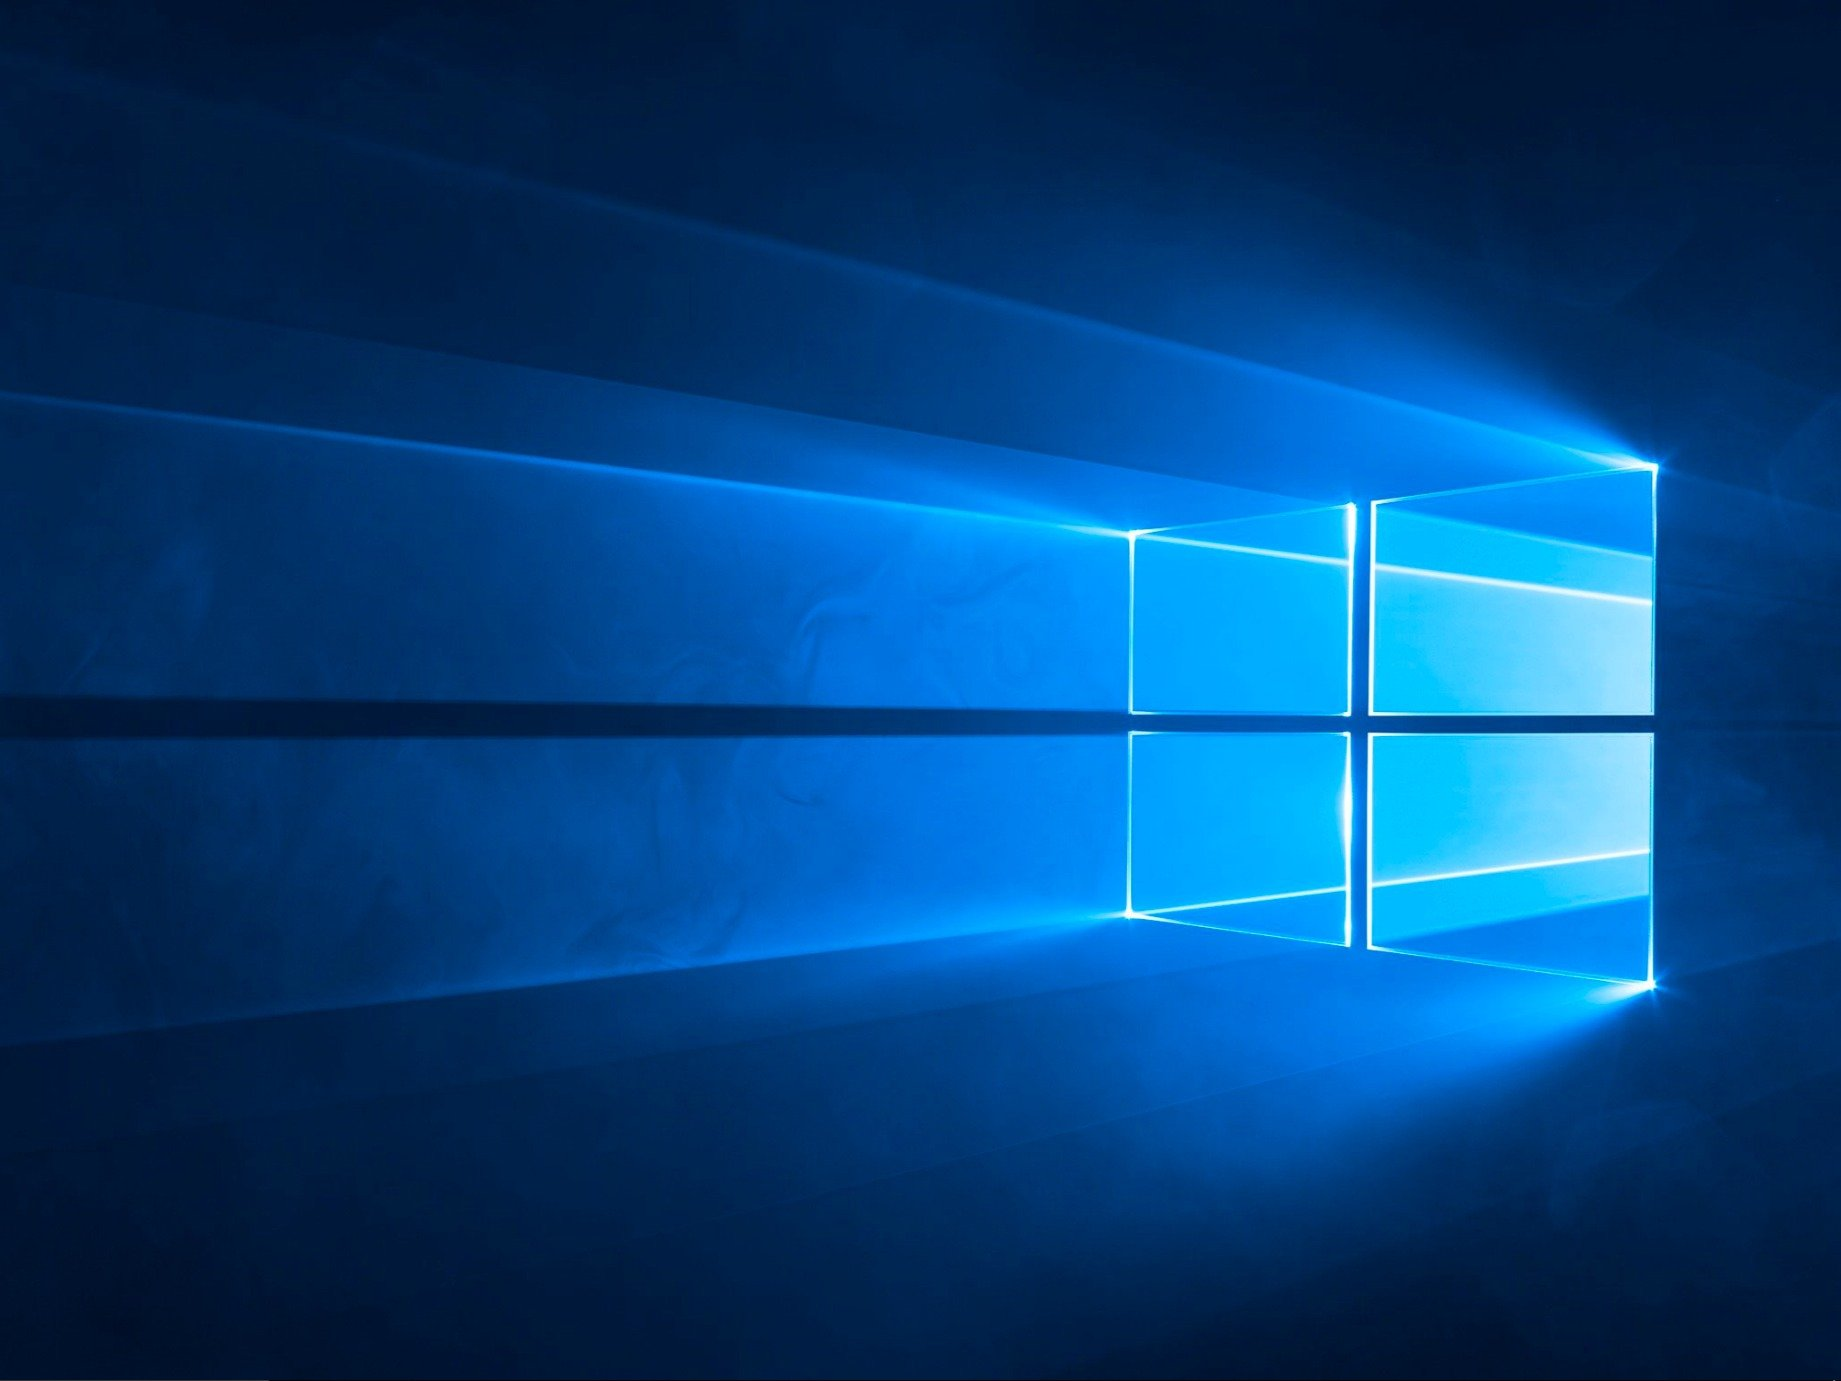 Windows 10 Spies On 14 Million Users: Here's How To Stop It